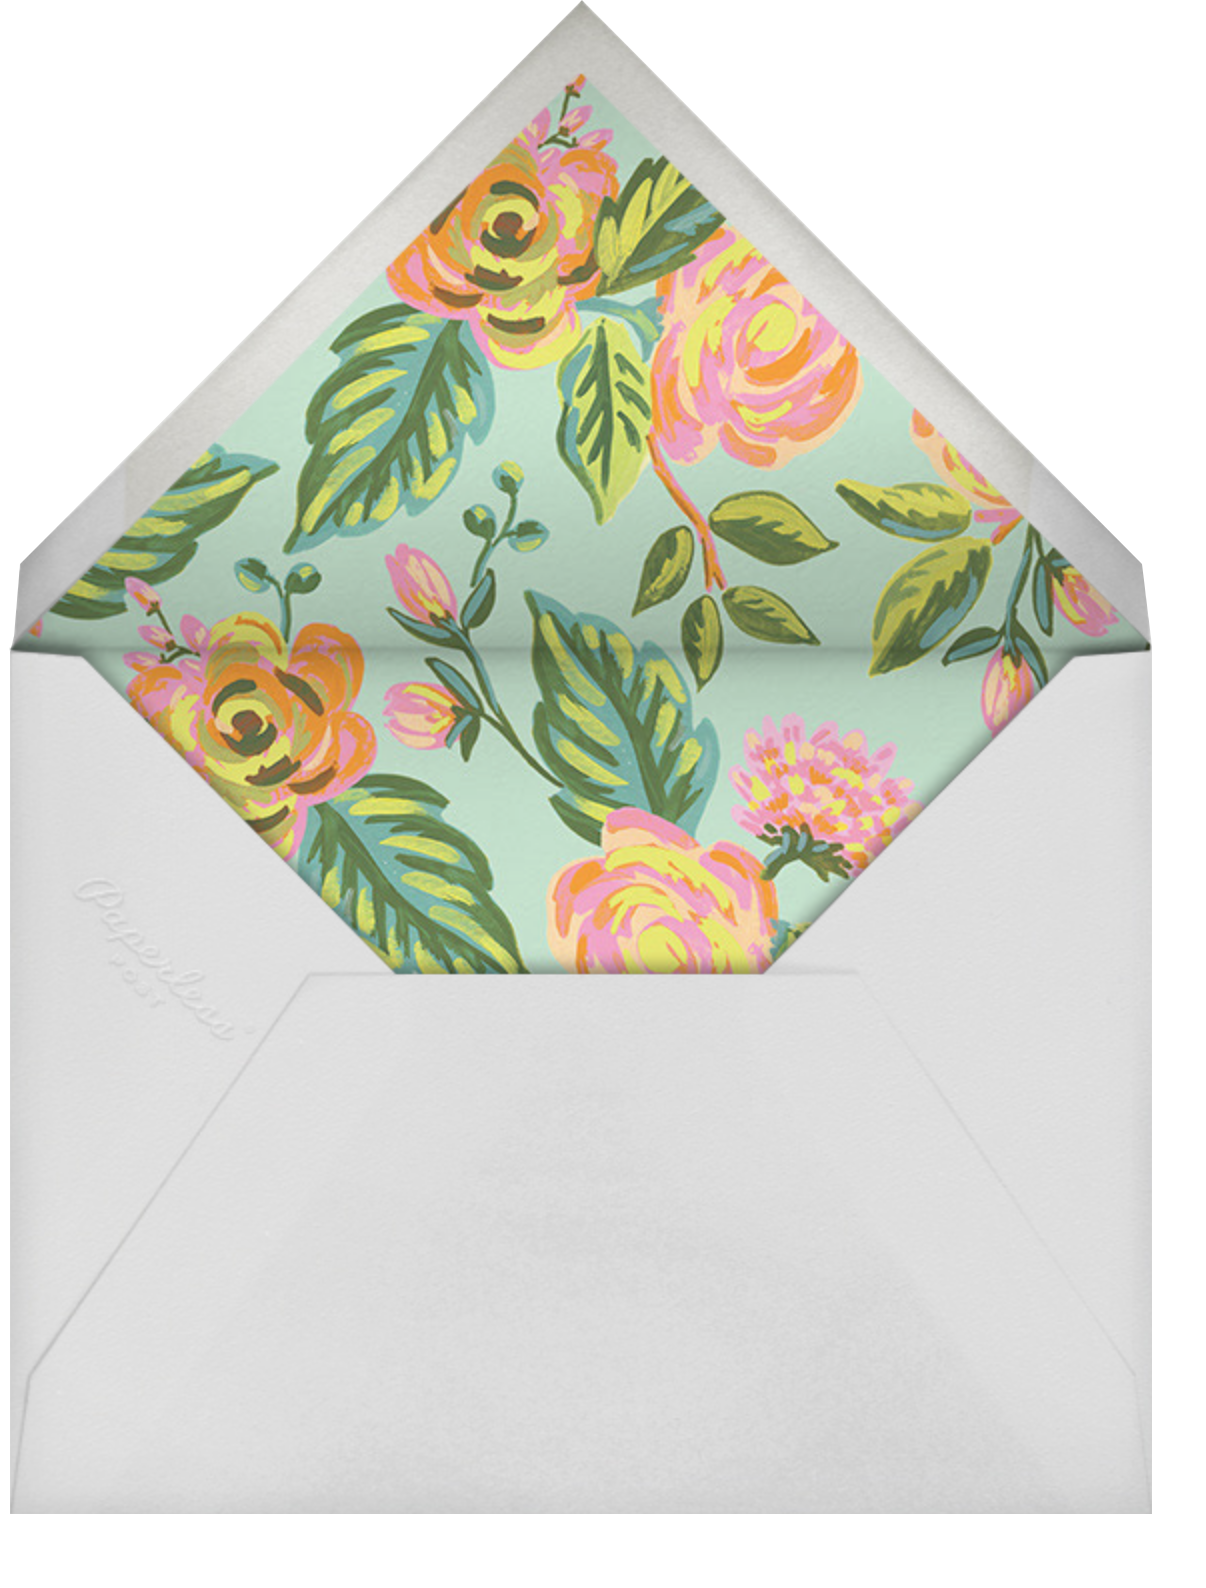 Rainbow Rose (Invitation) - Rifle Paper Co. - All - envelope back